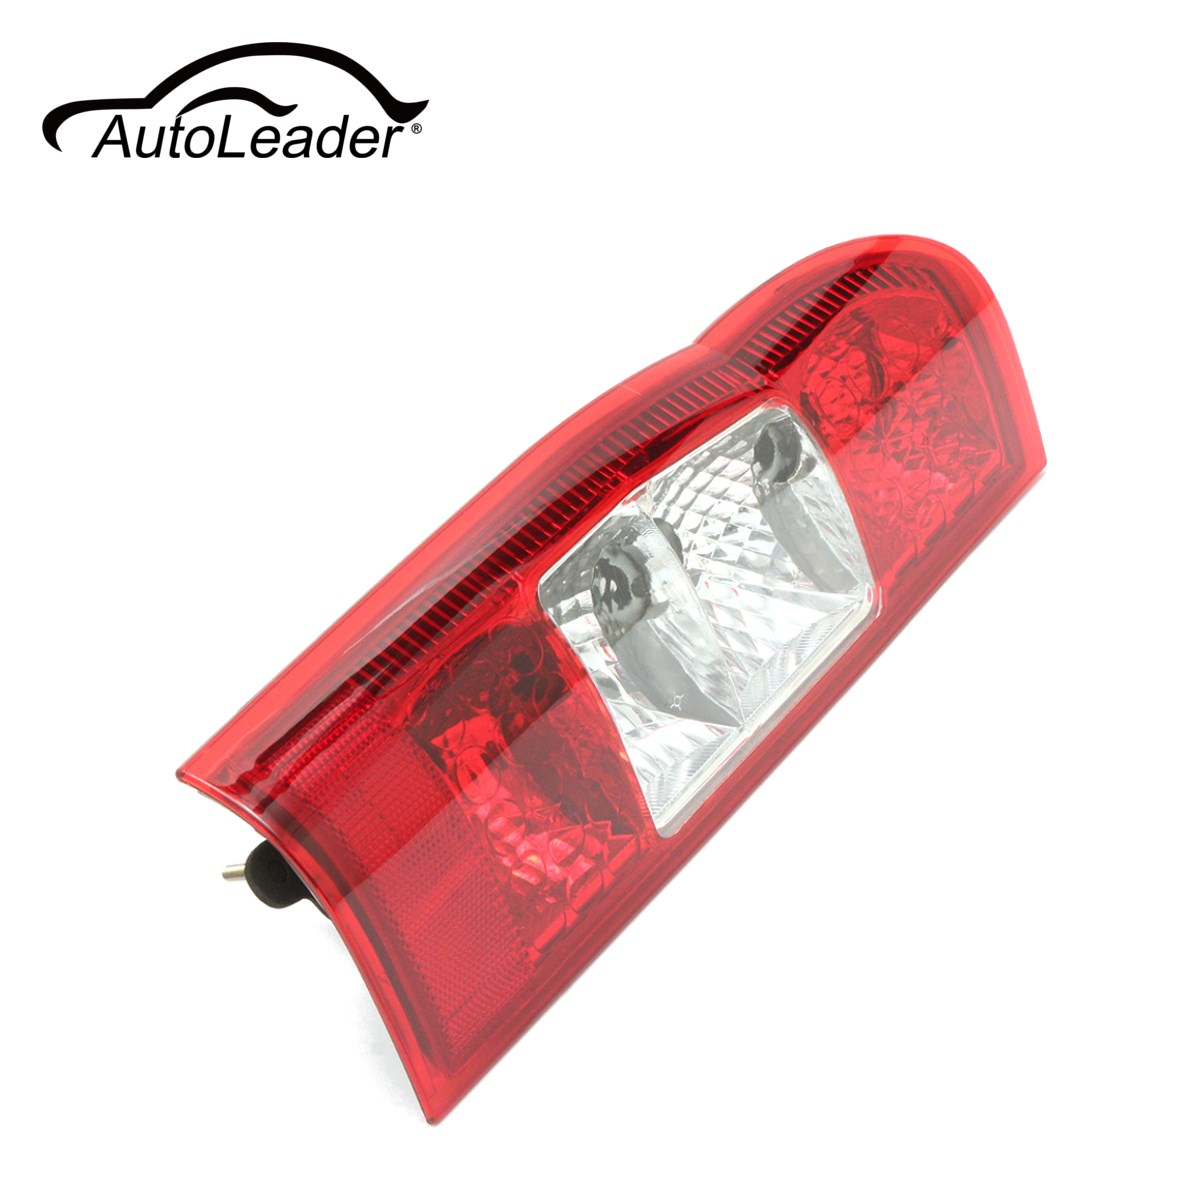 AutoLeader Car LED Tail  Left Rear Bumper Reflector Lamp Brake Light Rear Fog Lights For Ford TRANSIT VAN Mk7 2000-2006 geely emgrand 7 ec7 ec715 ec718 emgrand7 e7 car right left taillights rear lights brake light original